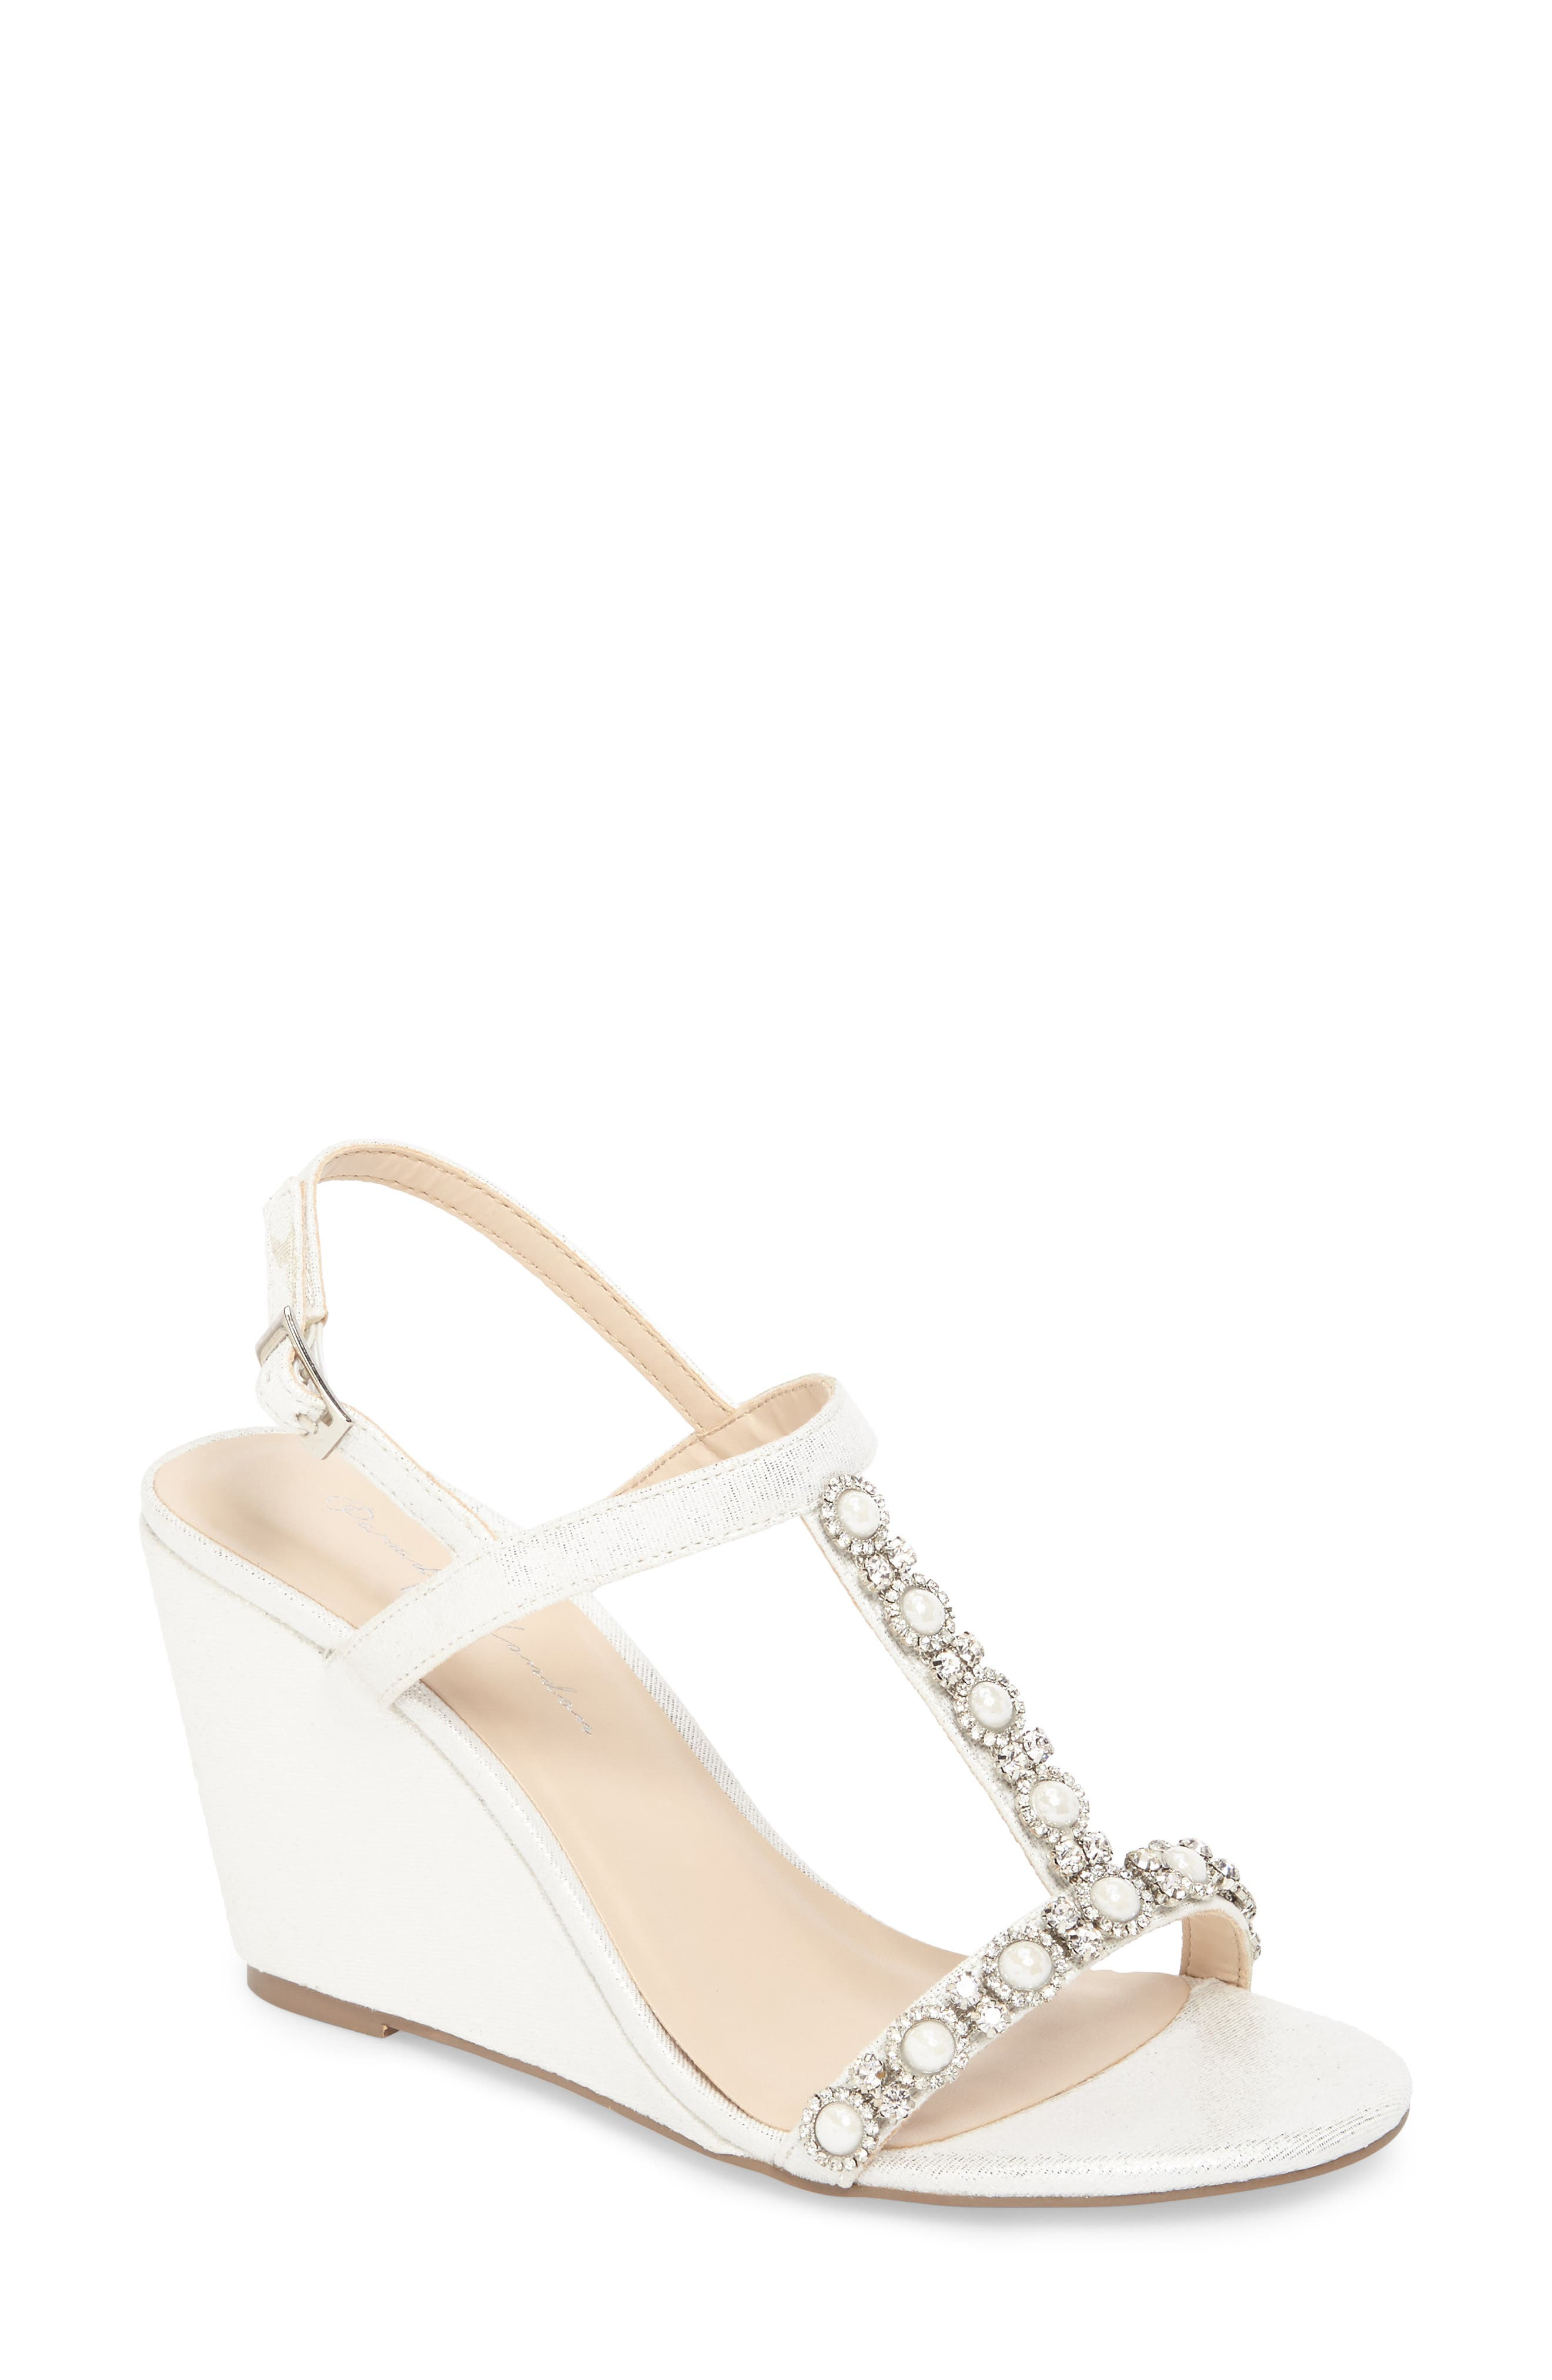 Kiana Embellished Wedge Sandal,                         Main,                         color, Silver Glitter